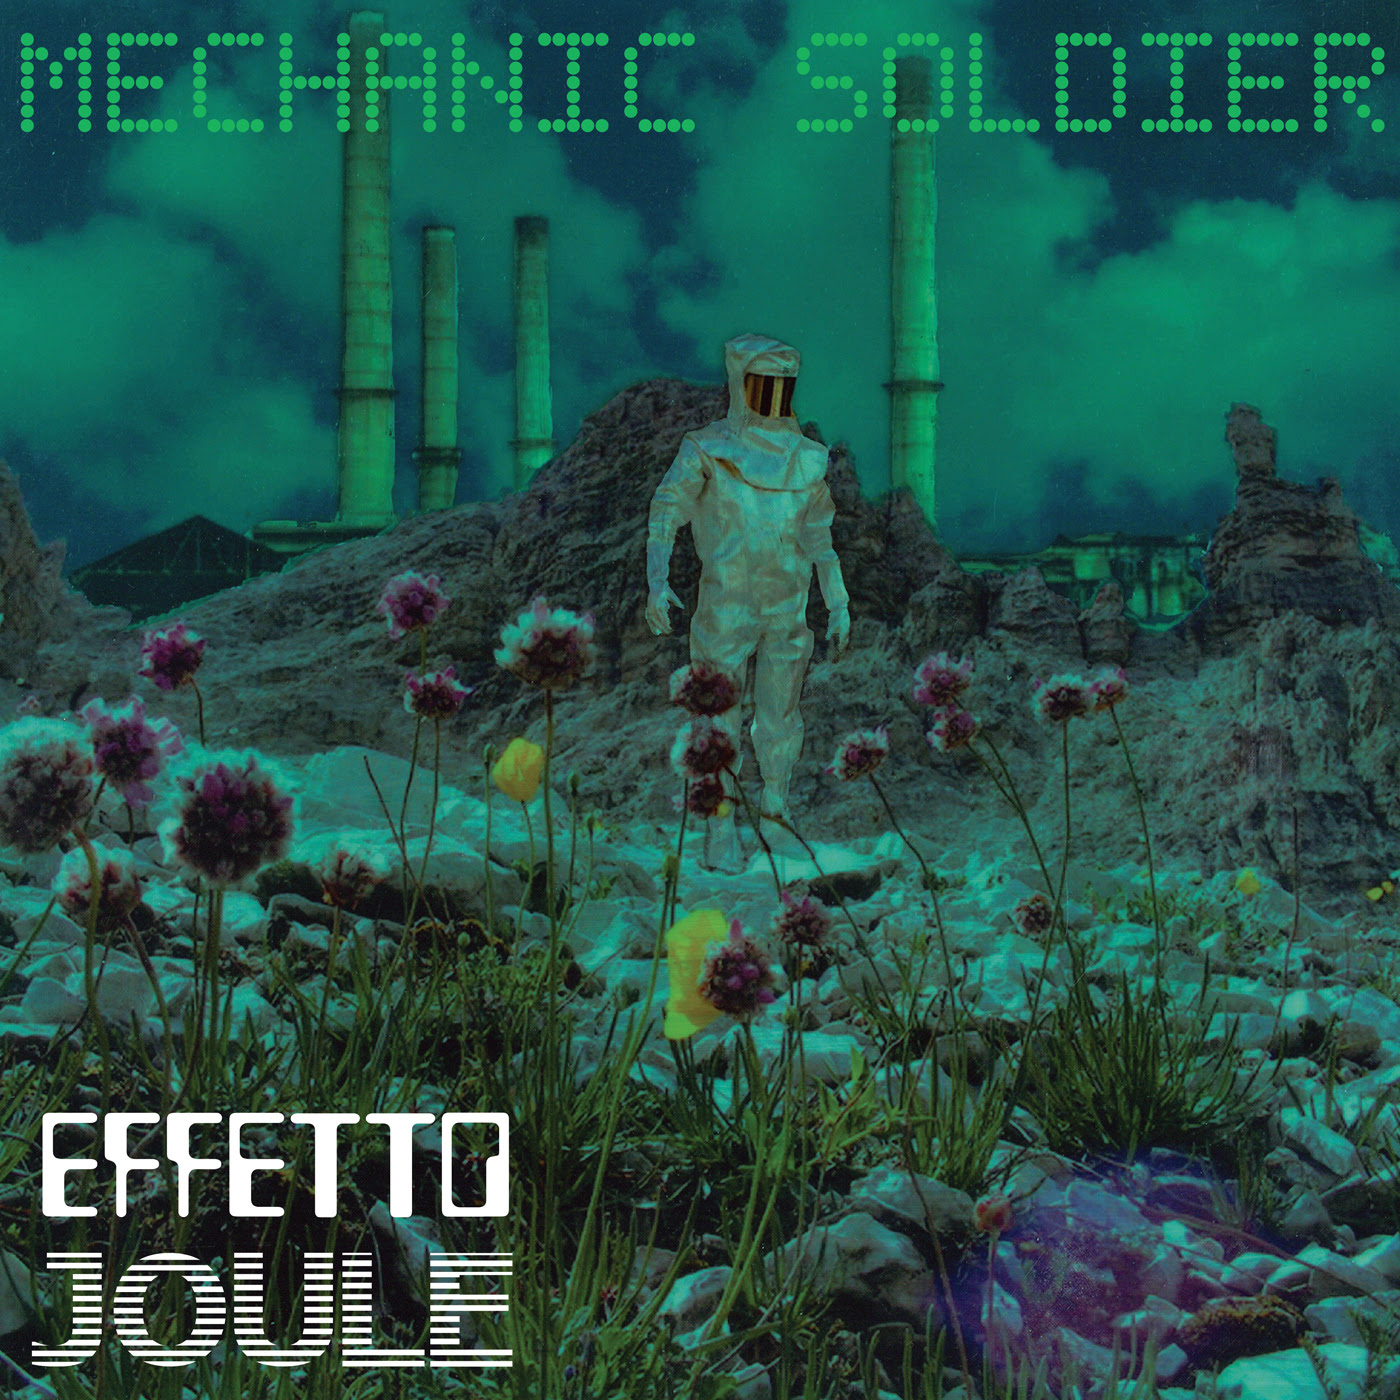 Medical Records - Effetto Joule, Severed Heads and Derivatives out on early June